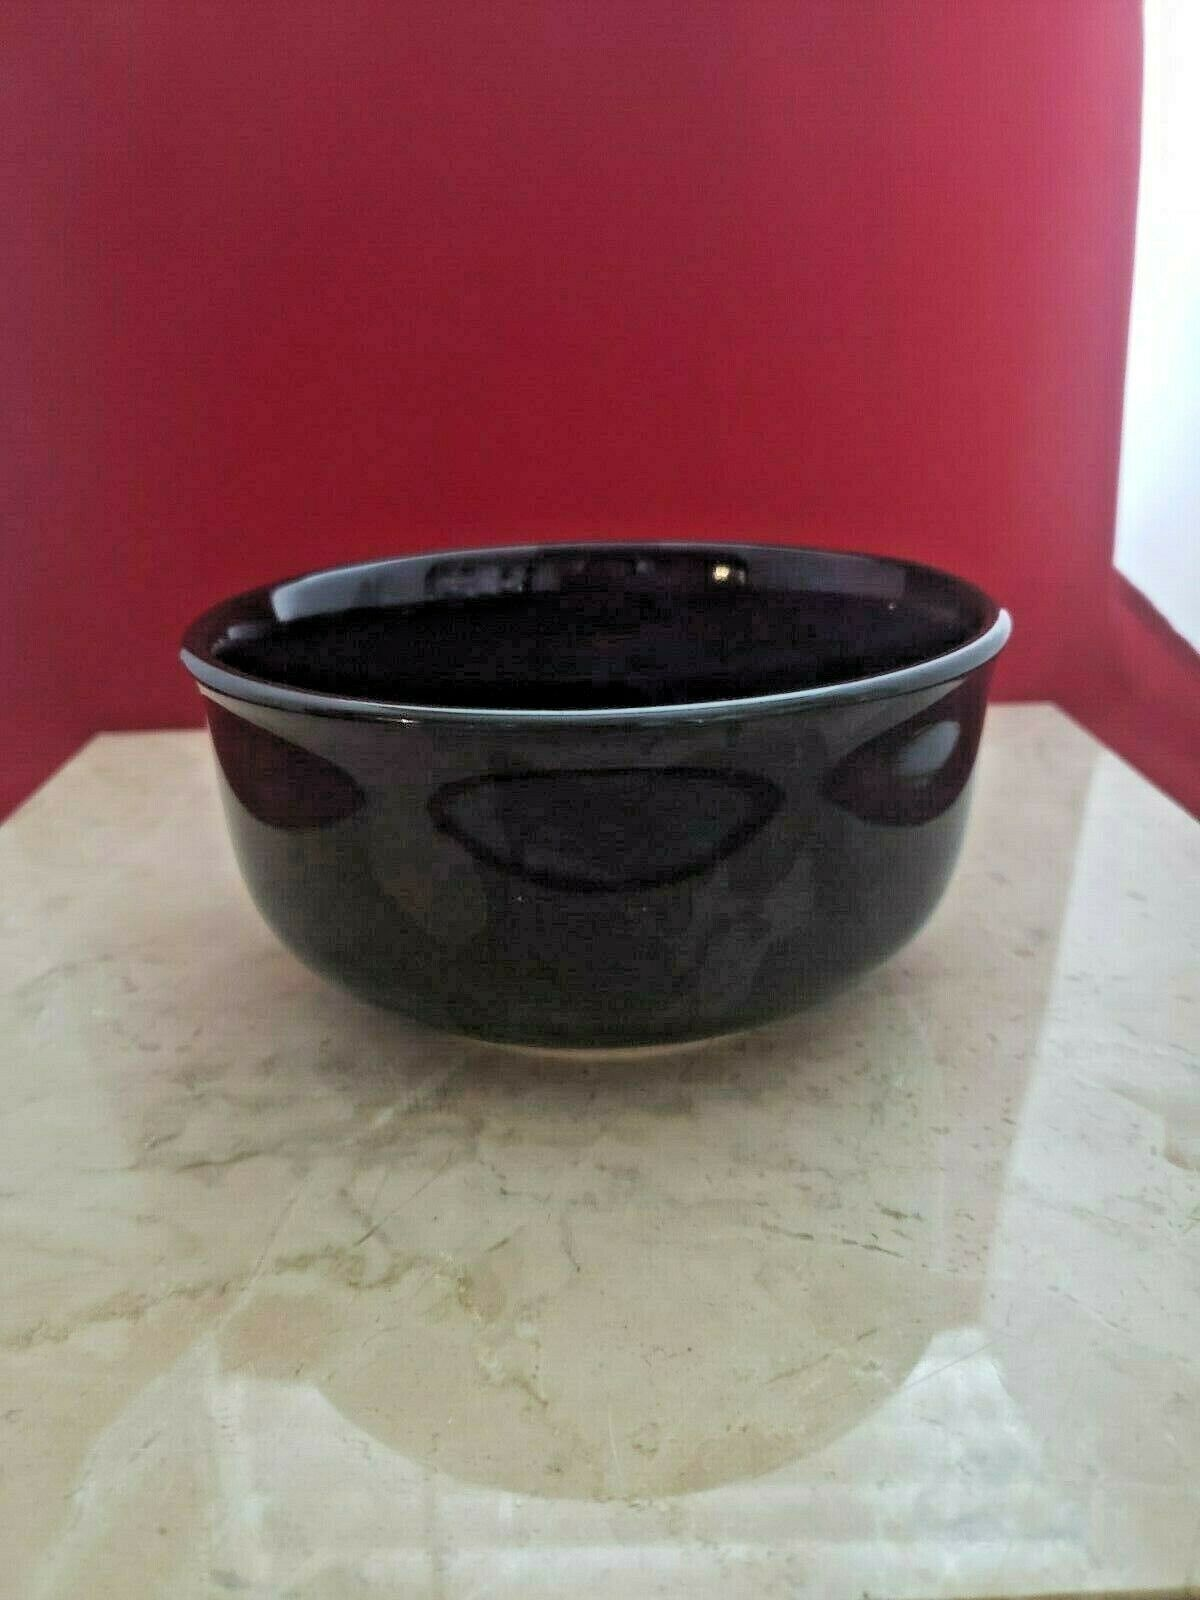 Royal Norfolk Black Soup / Cereal Bowl - Small Chip - $9.99